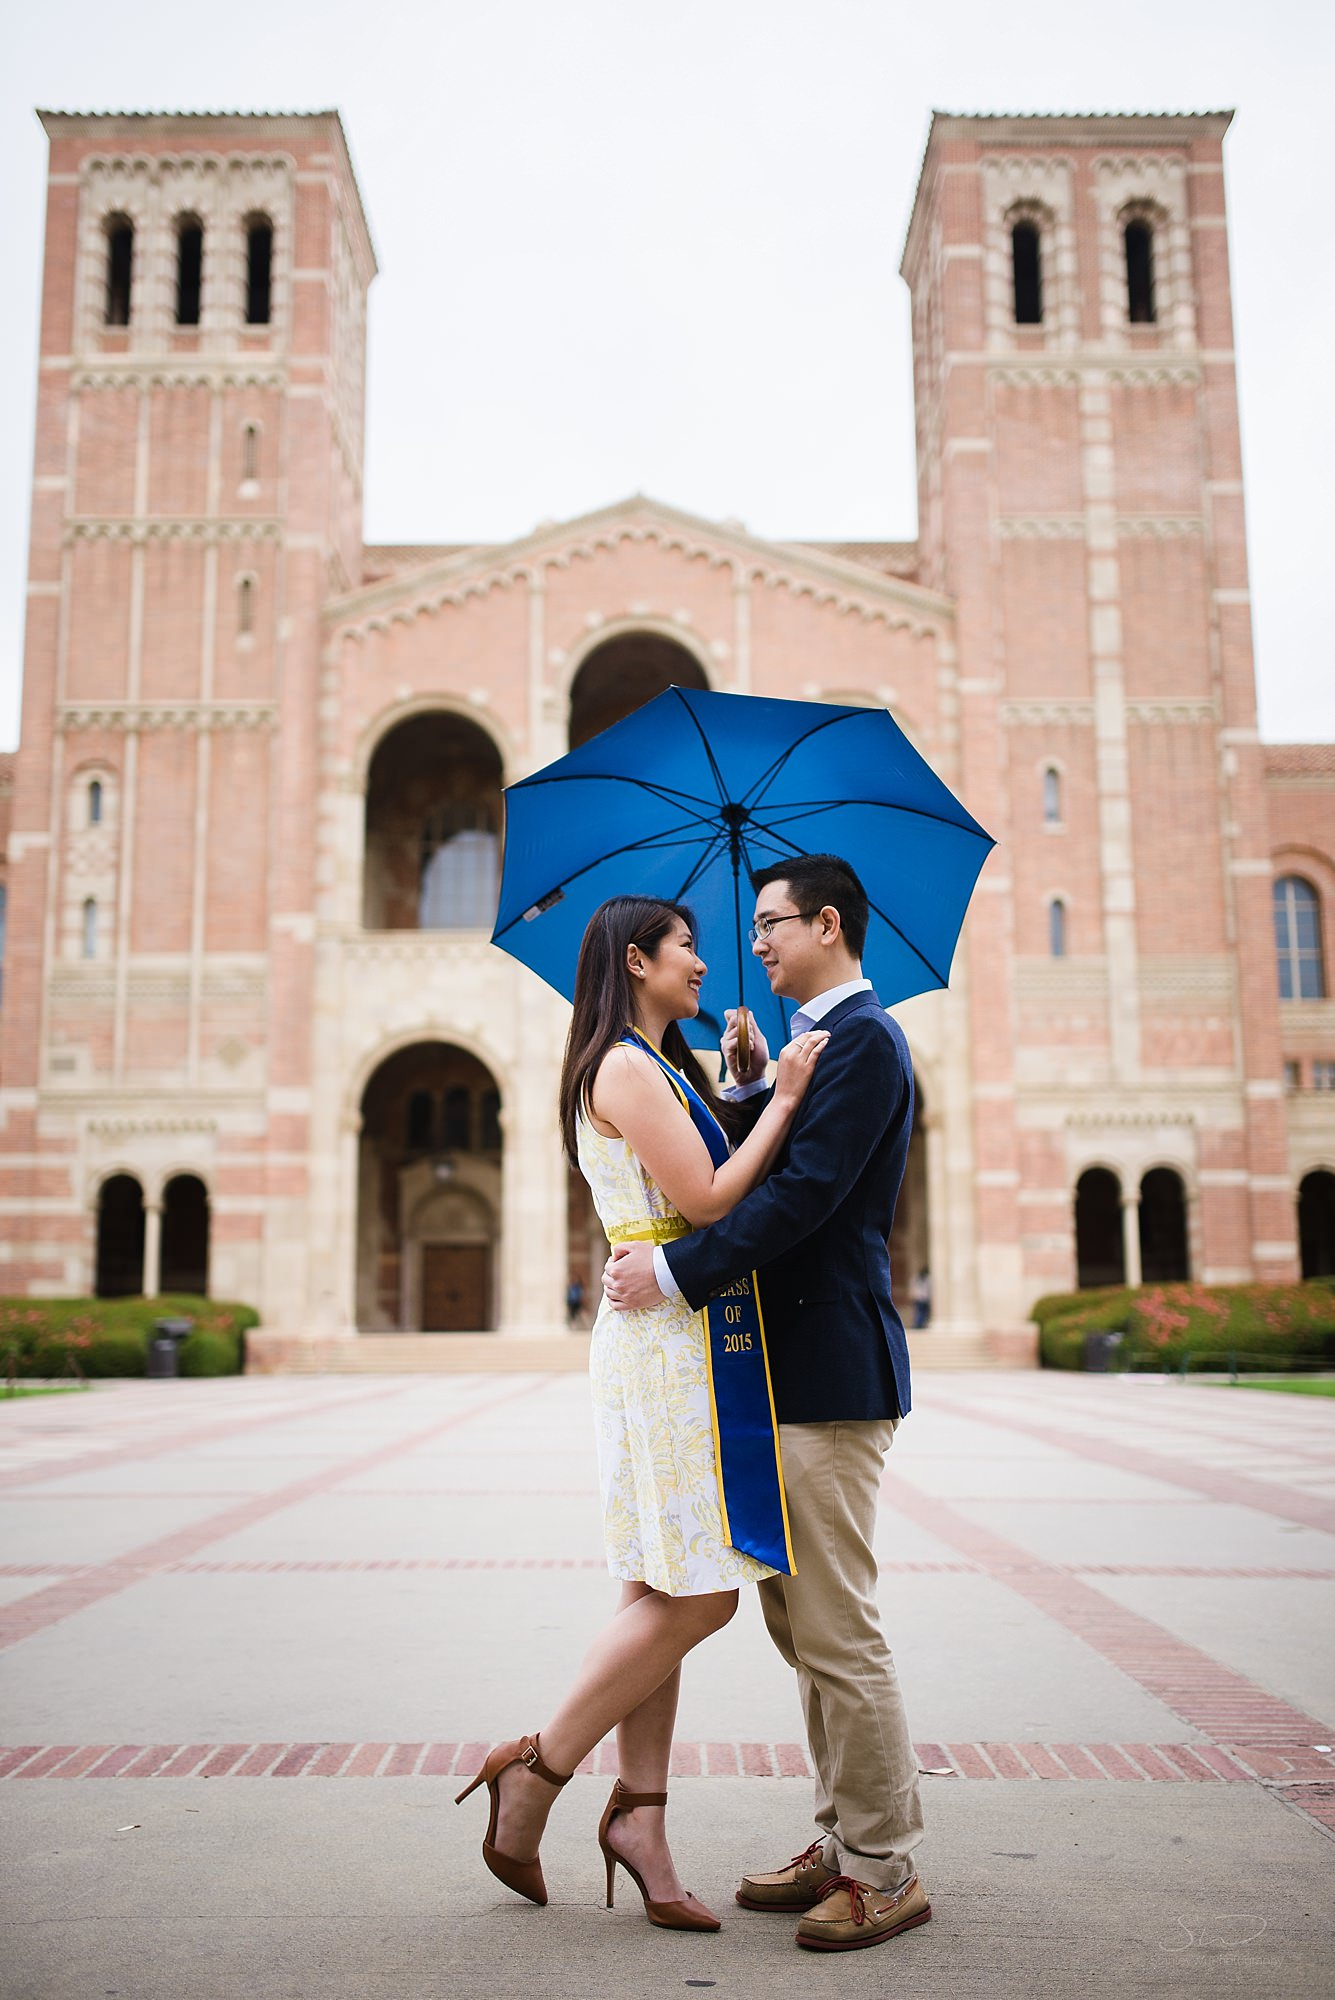 beautiful artistic graduation senior portrait of a couple holding umbrella in front of royce hall at ucla in los angeles